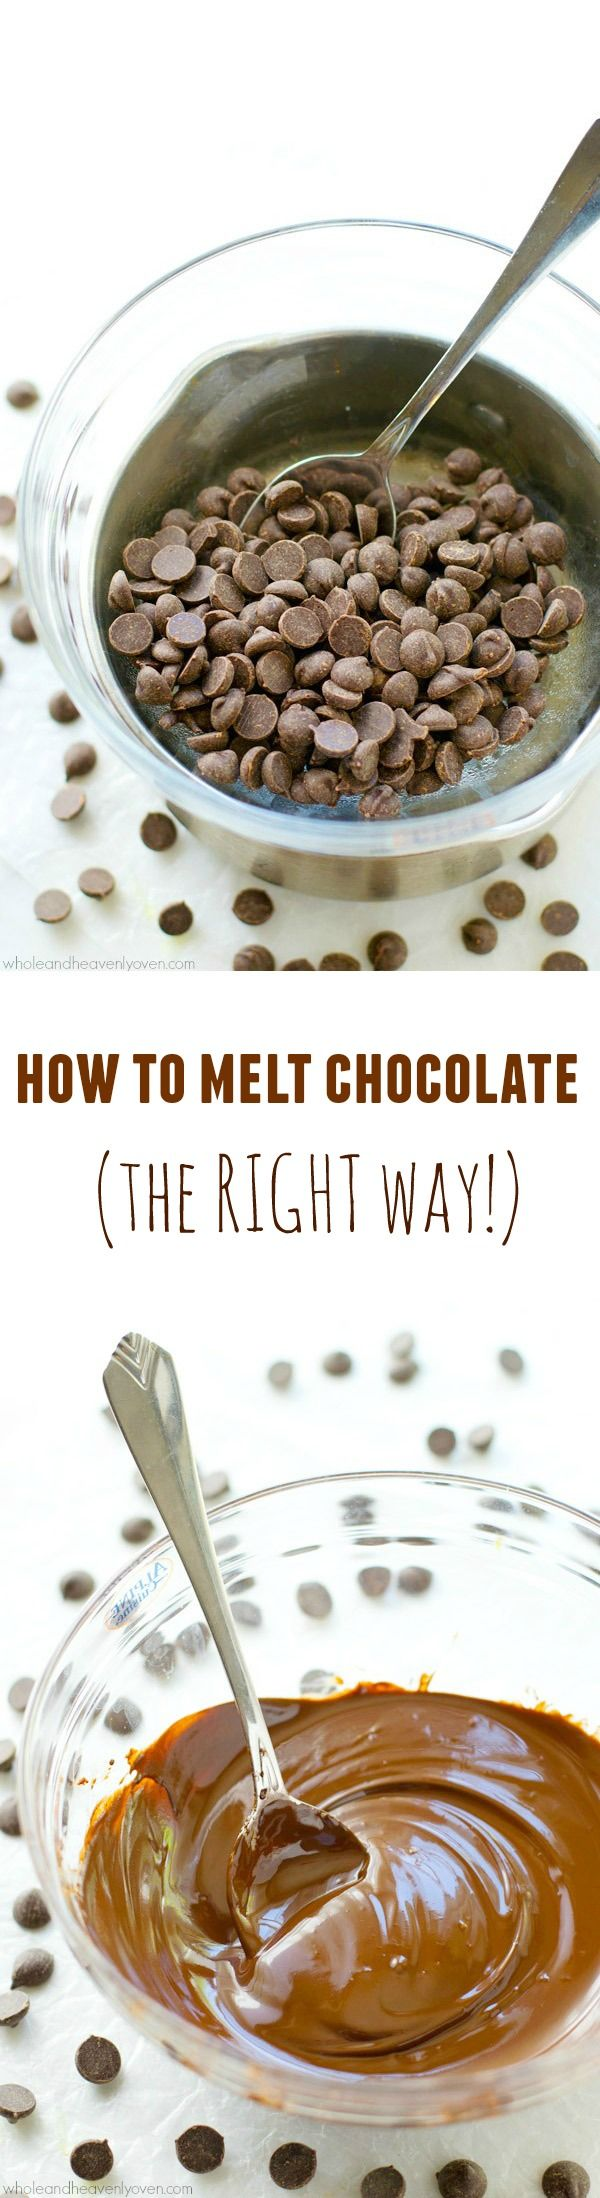 How To Melt Chocolate (the right way!) | Melted chocolate, Bowls ...